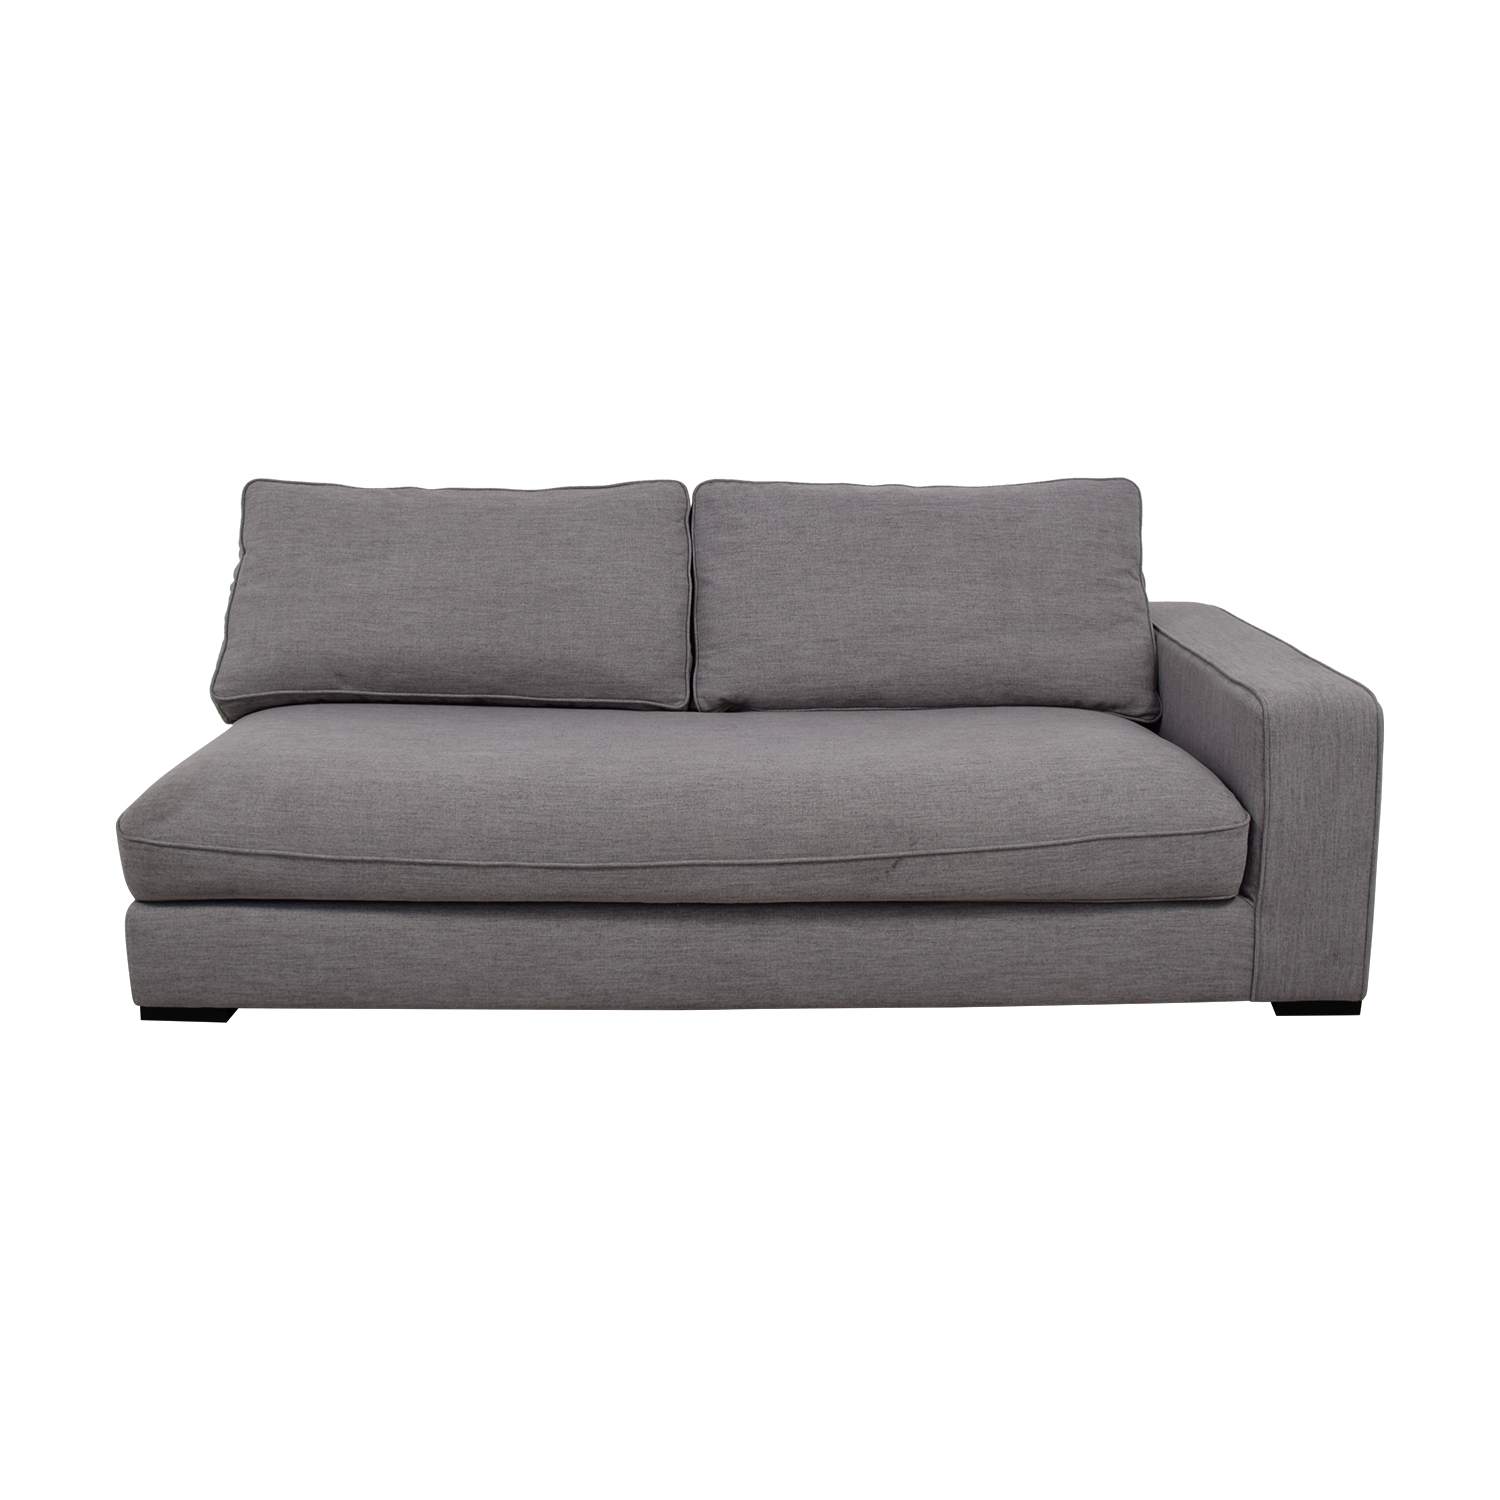 Ainsley Grey Left Arm Chaise